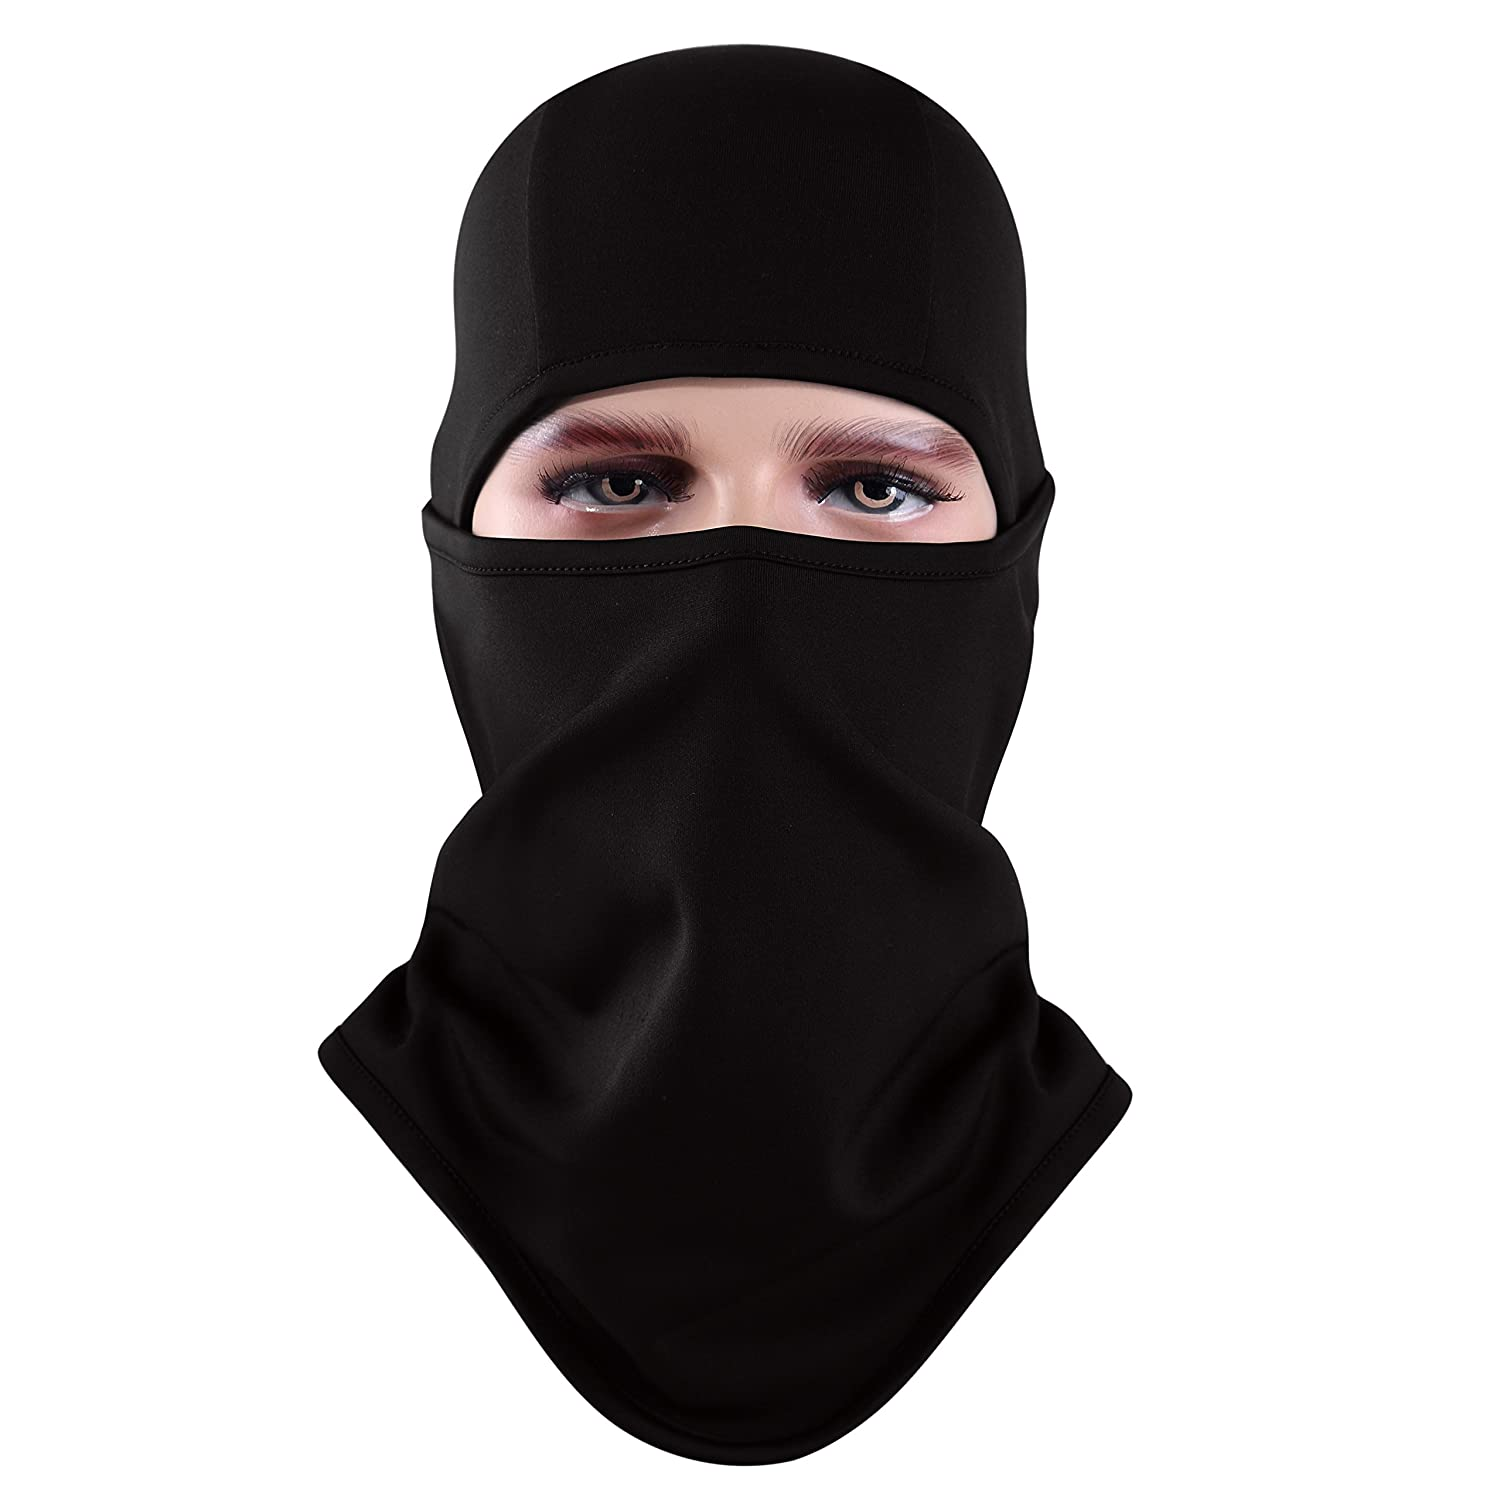 Aegend Balaclava, Ski Face Mask Polyester Fleece for Women Men Youth Neck Warmer for Motorcycle Snowboard Cycling Outdoors in Winter Tactical Balaclava Hood or Lightweight Windproof Hat, 1 Piece